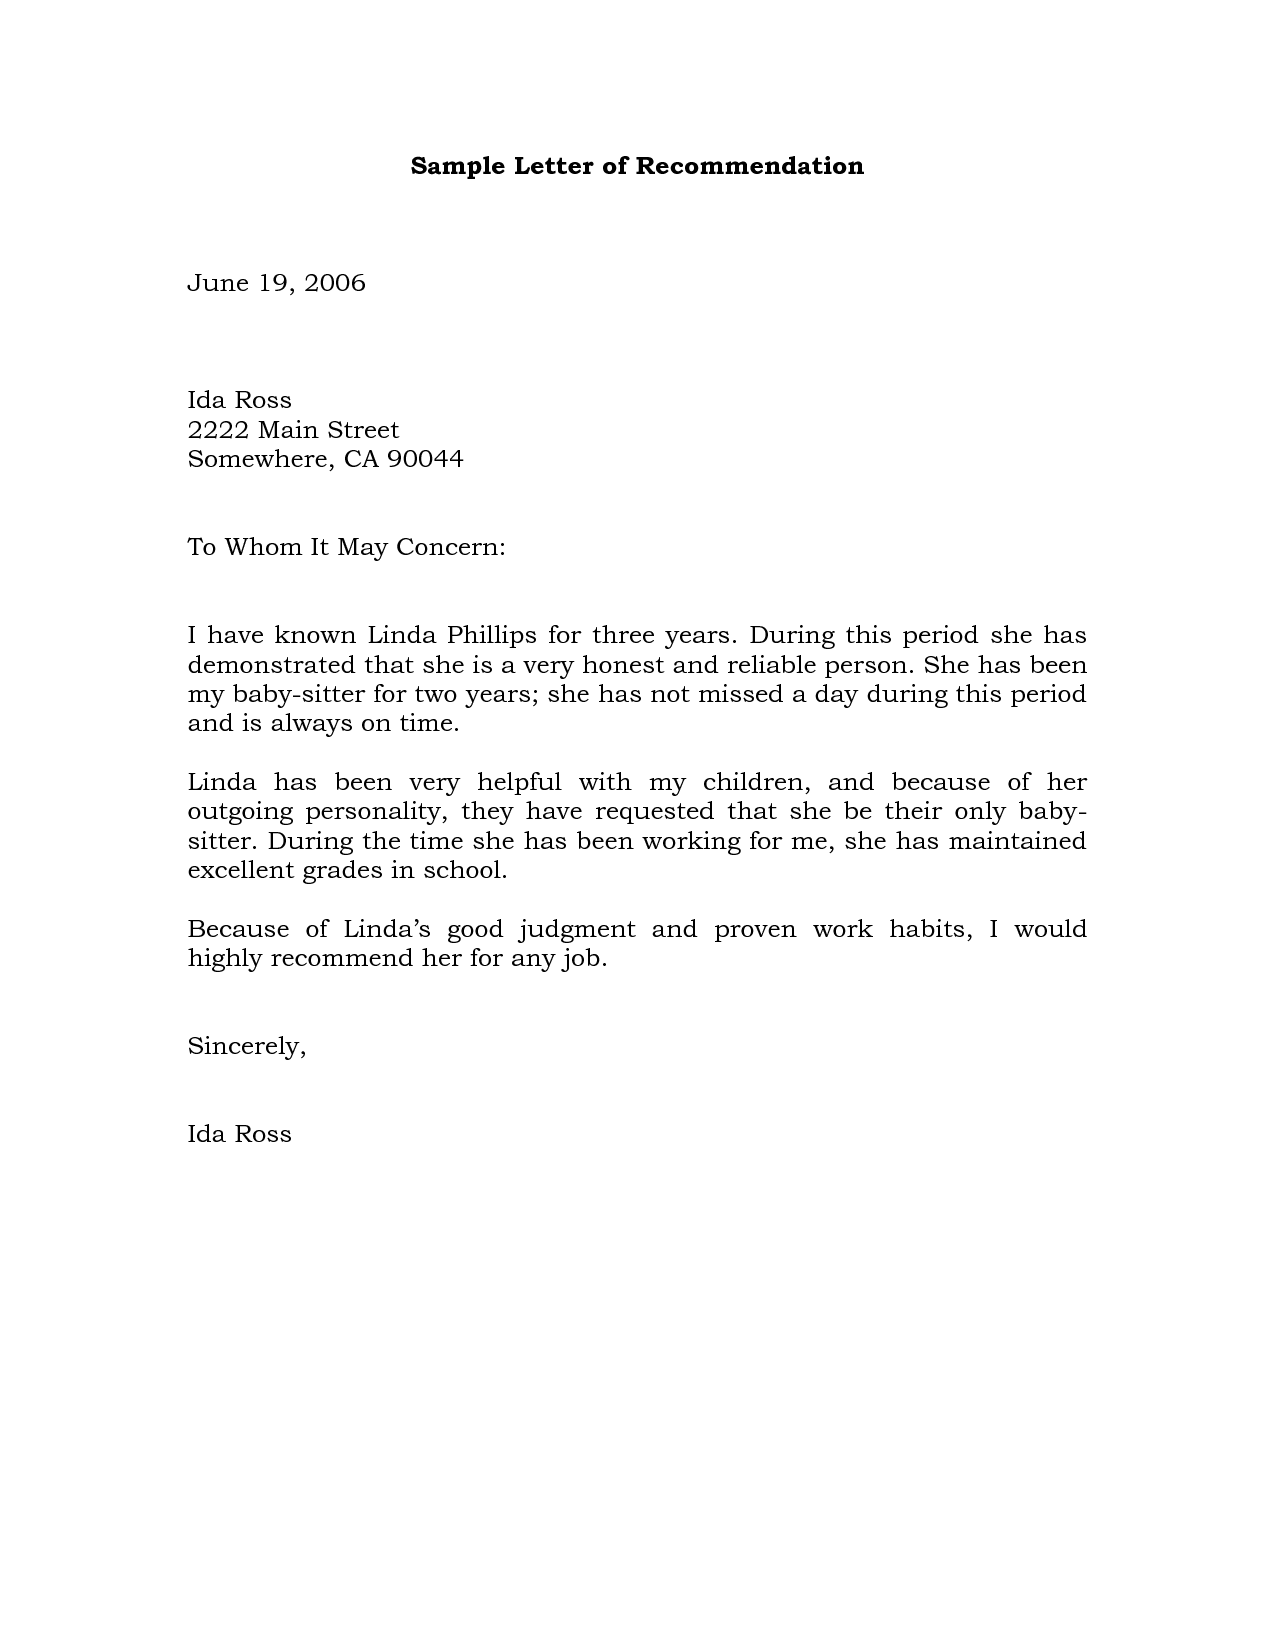 Sample Recommendation Letter Example Projects To Try